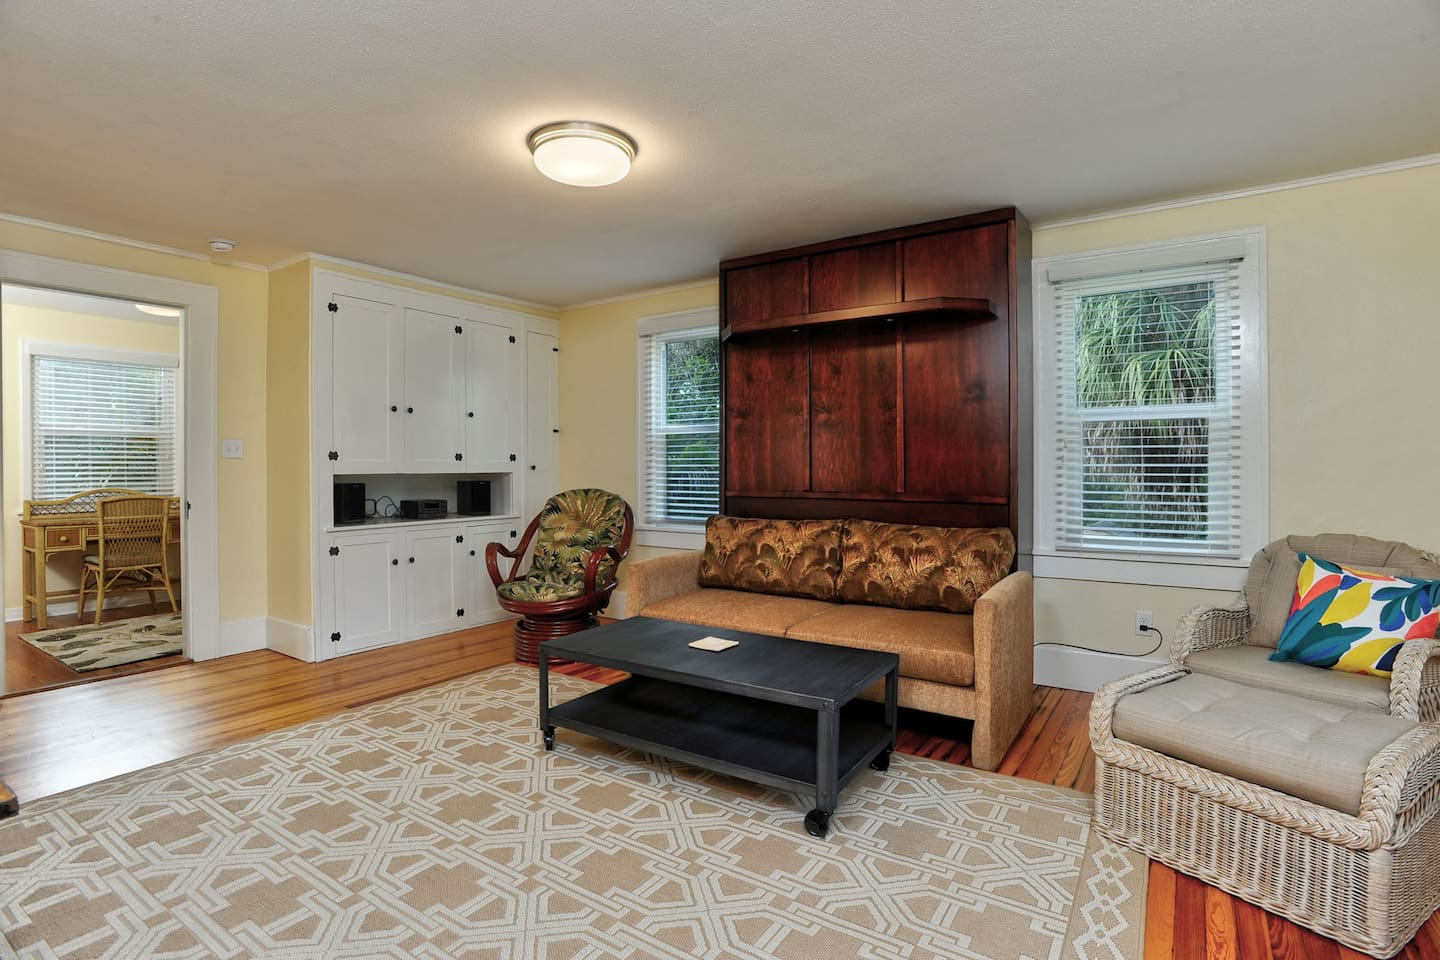 Bright, sunny, comfortable and immaculate main room with original 1920's cabinetry and refinished original heart of pine flooring throughout the apartment.